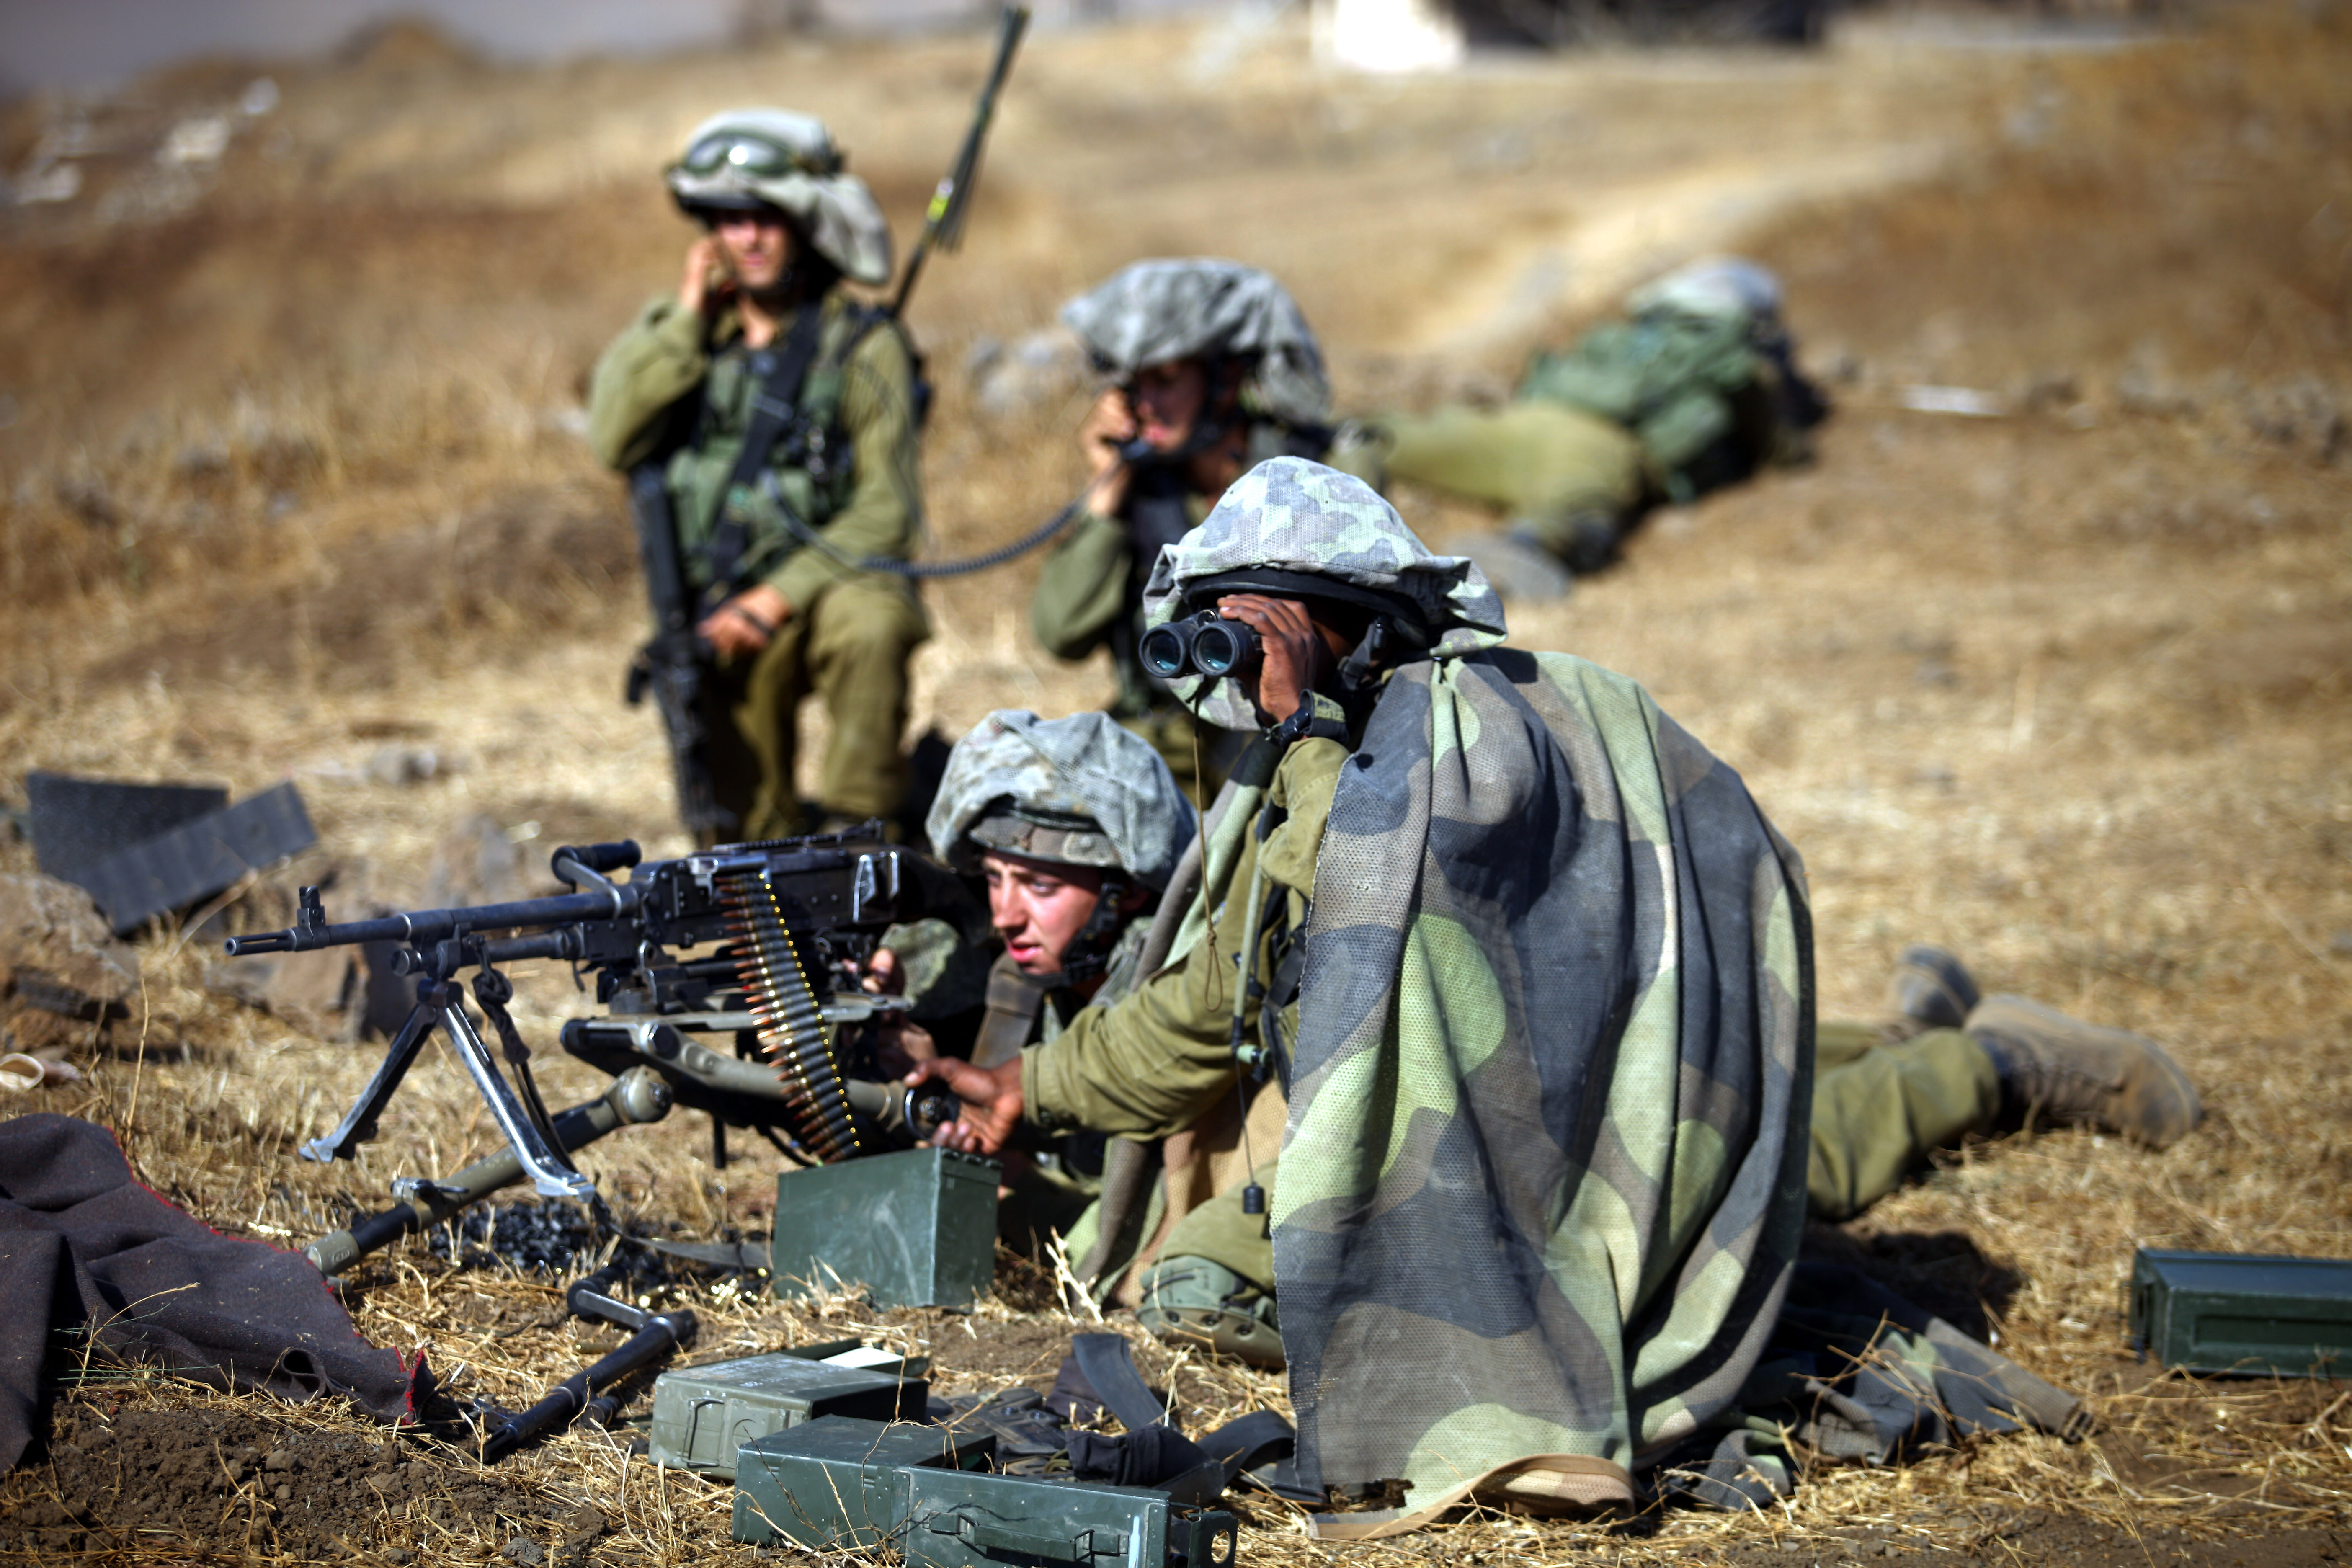 israeli soldier cover with camouflage equipment during a military exercise in the Golan Heights norhten Israel on 21 August 2012